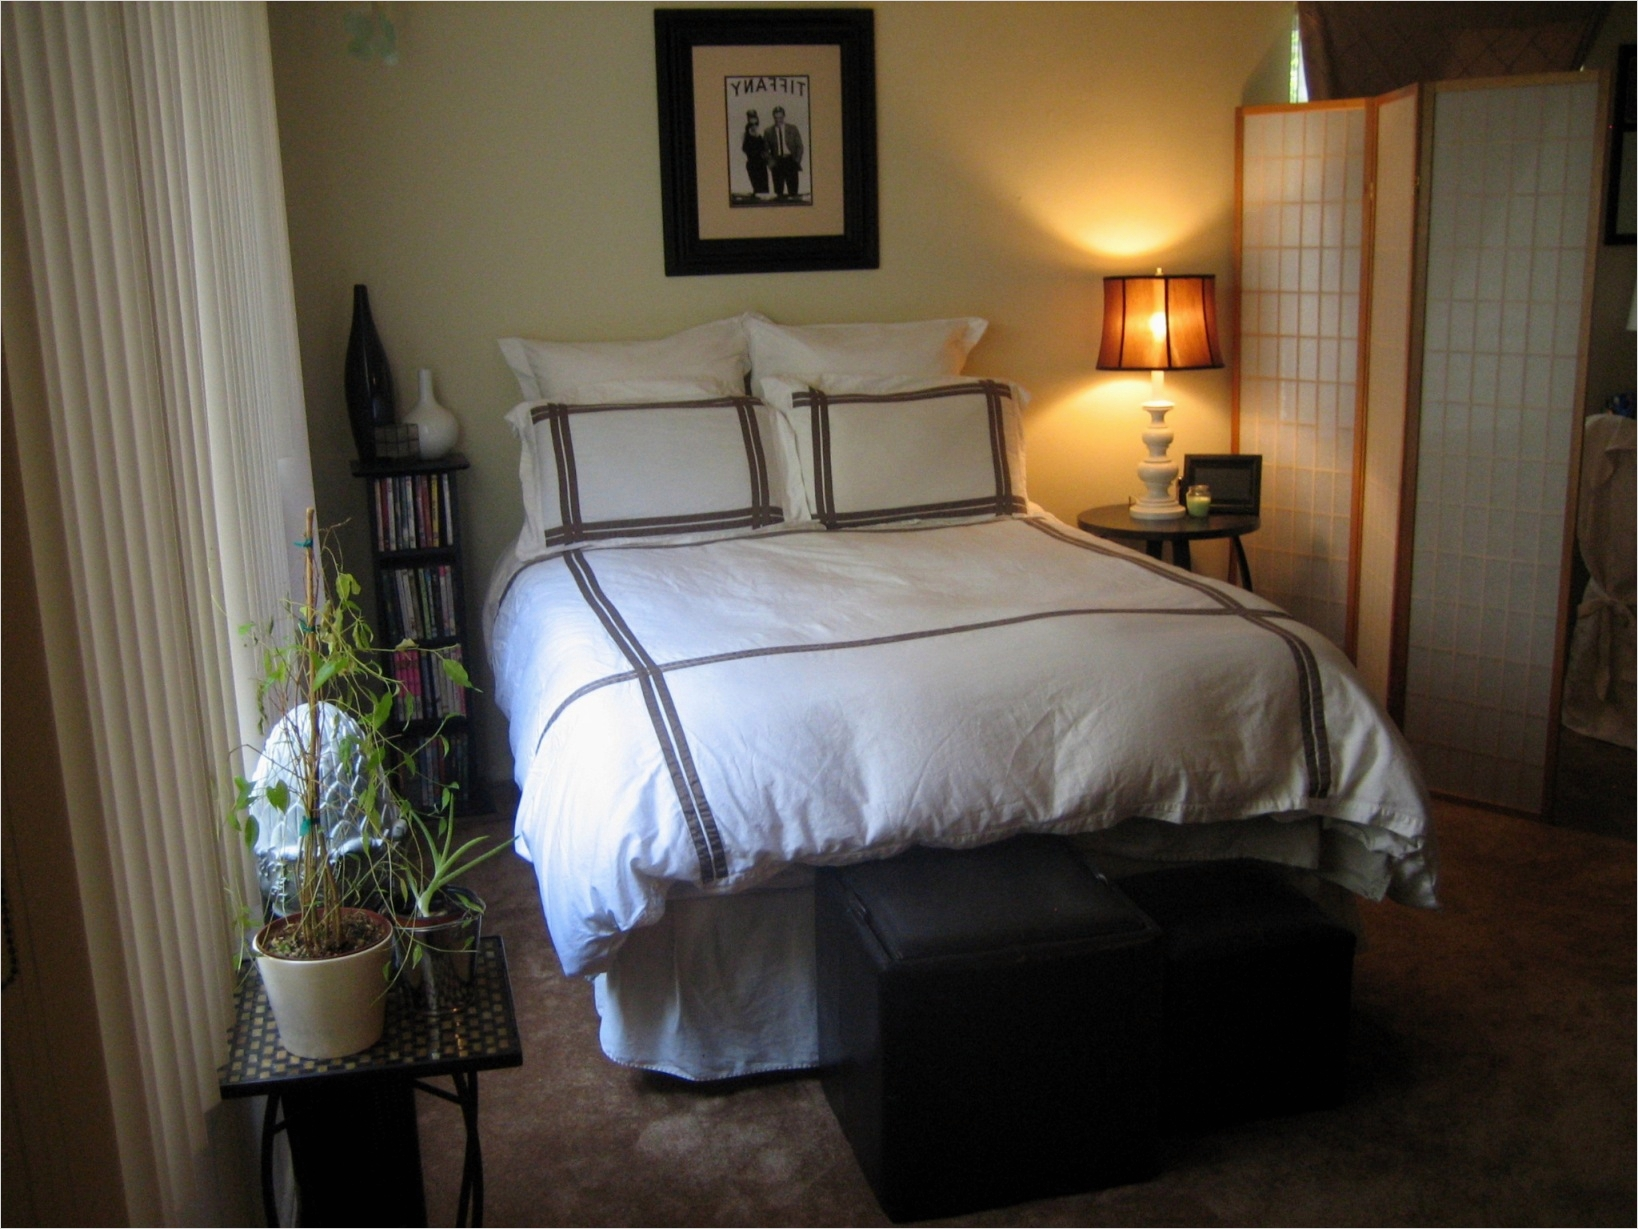 43 Stunning Small Bedroom Decorating Ideas On A Budget 27 301 Moved Permanently 9